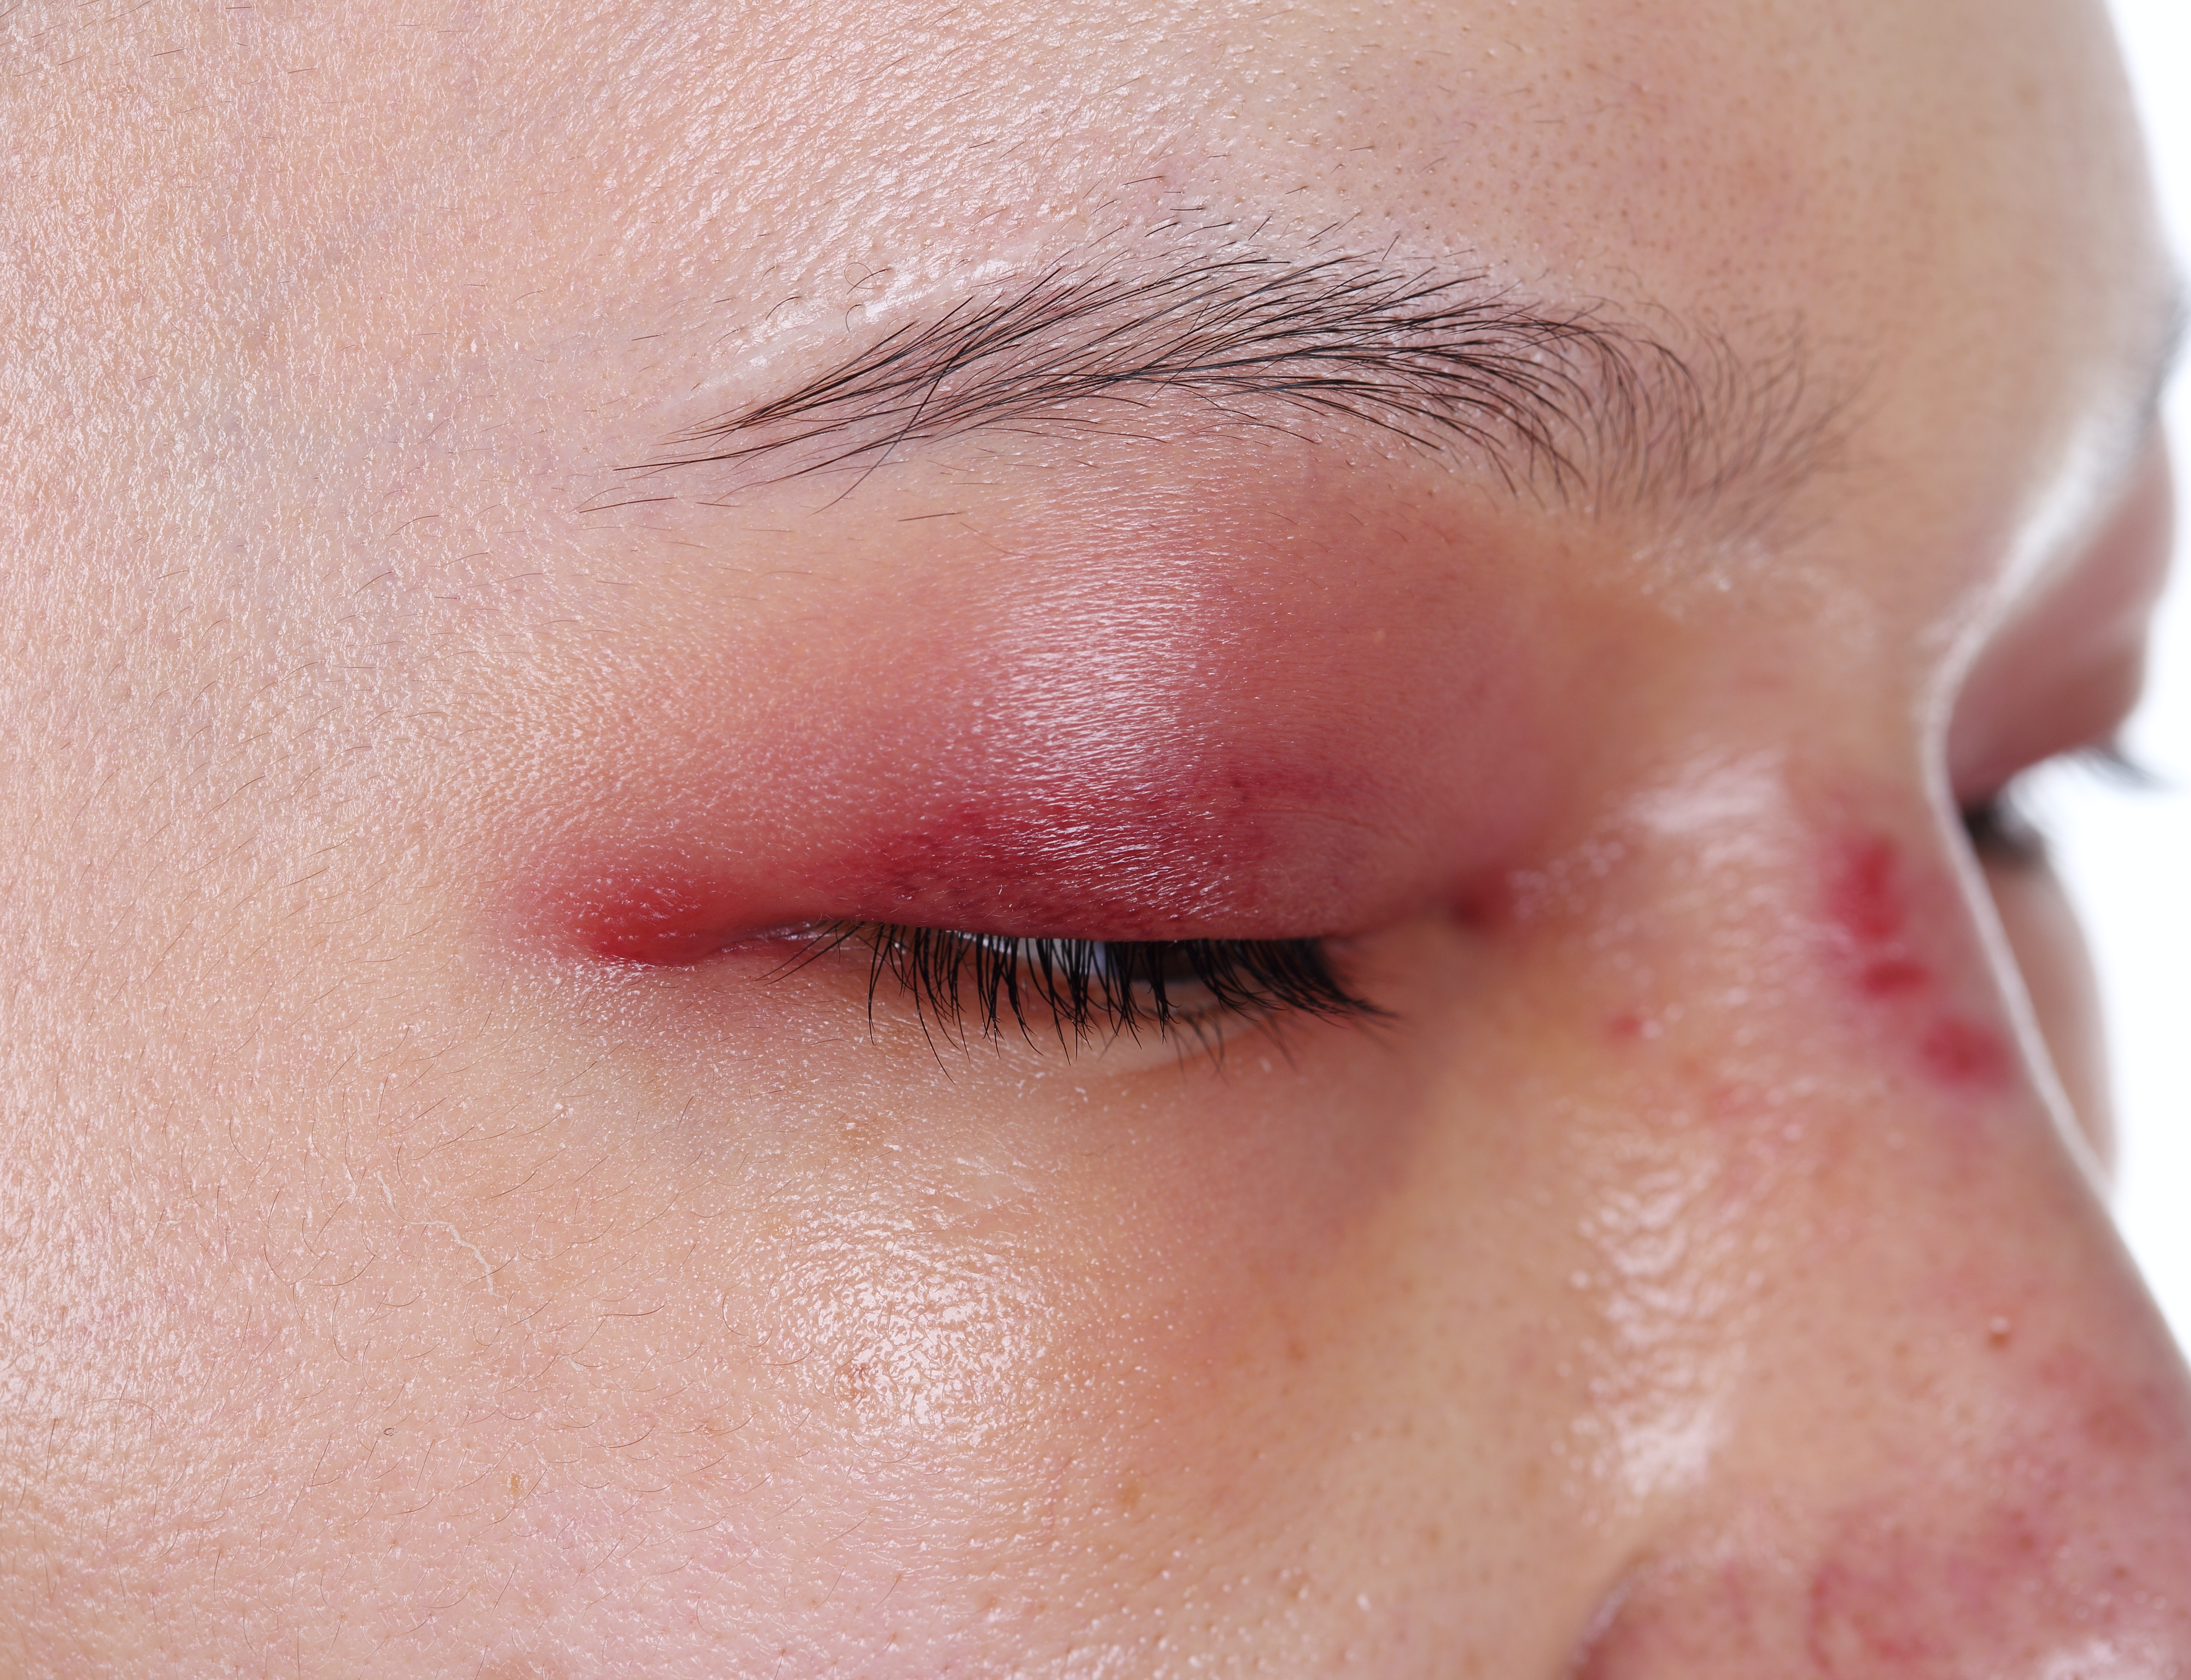 An image depicting a person suffering from bilateral eye swelling symptoms